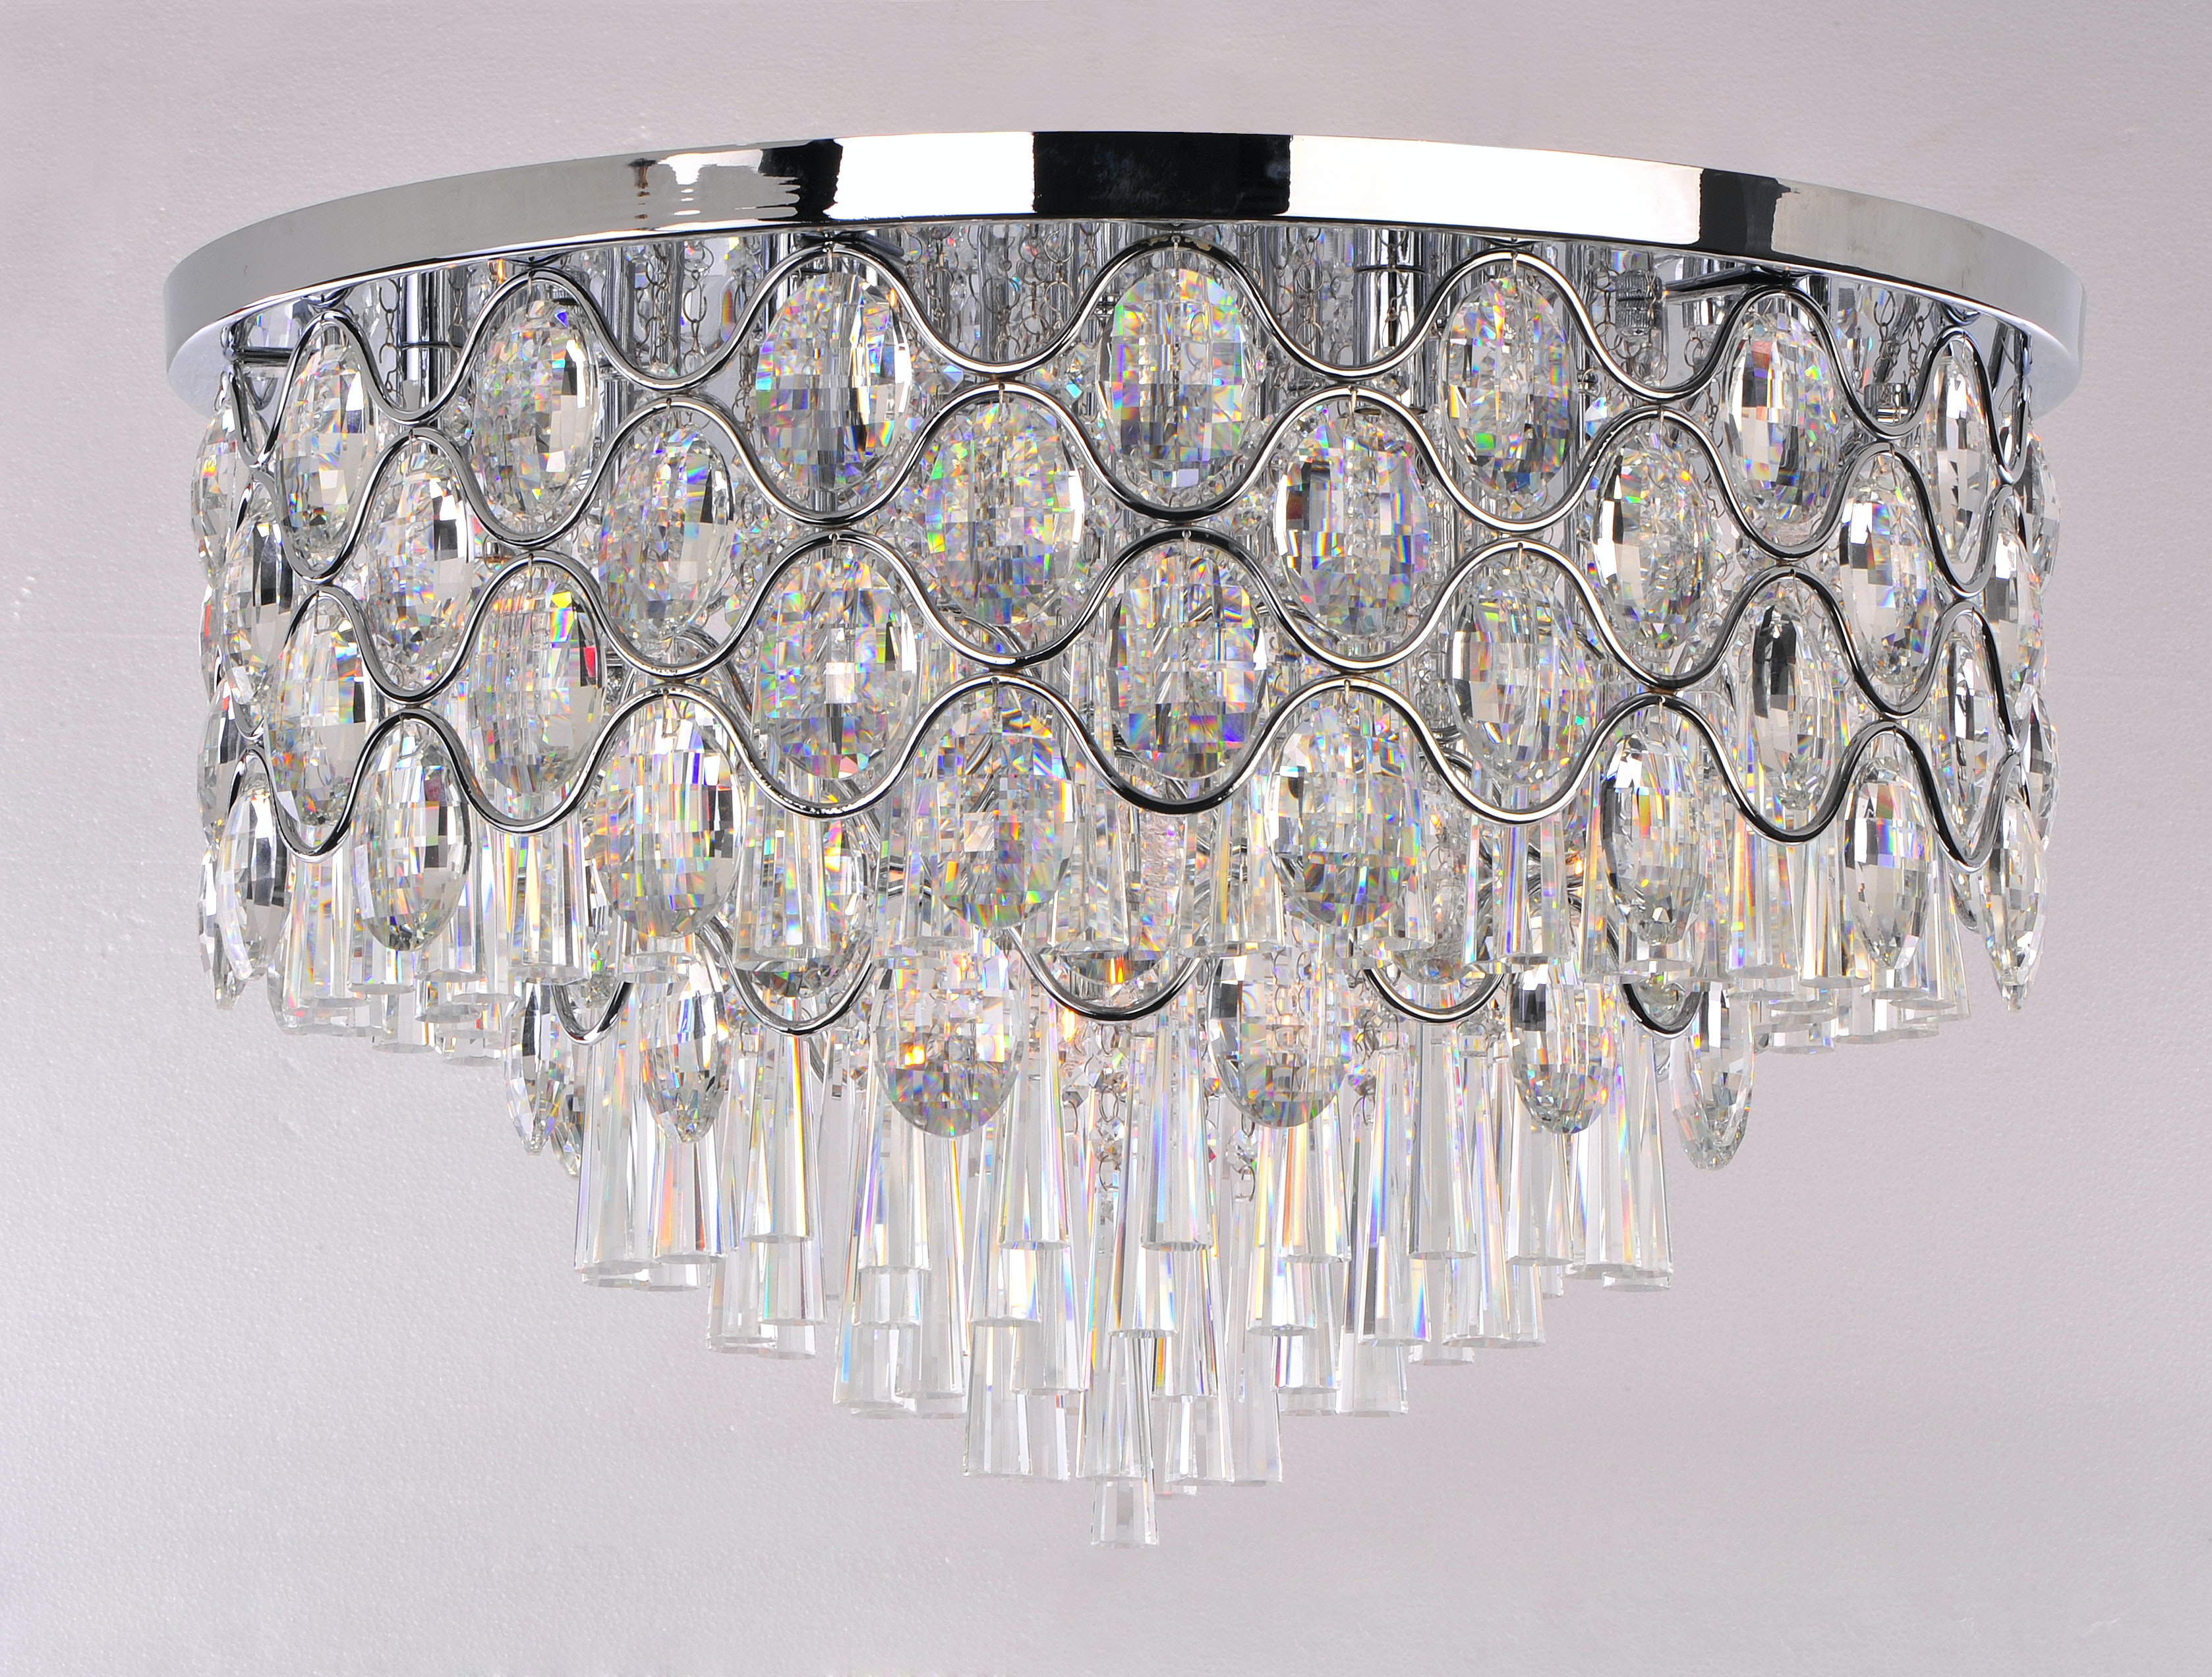 Jewel flush mount for sale in lancaster pennsylvania yale lighting concepts cherry hill